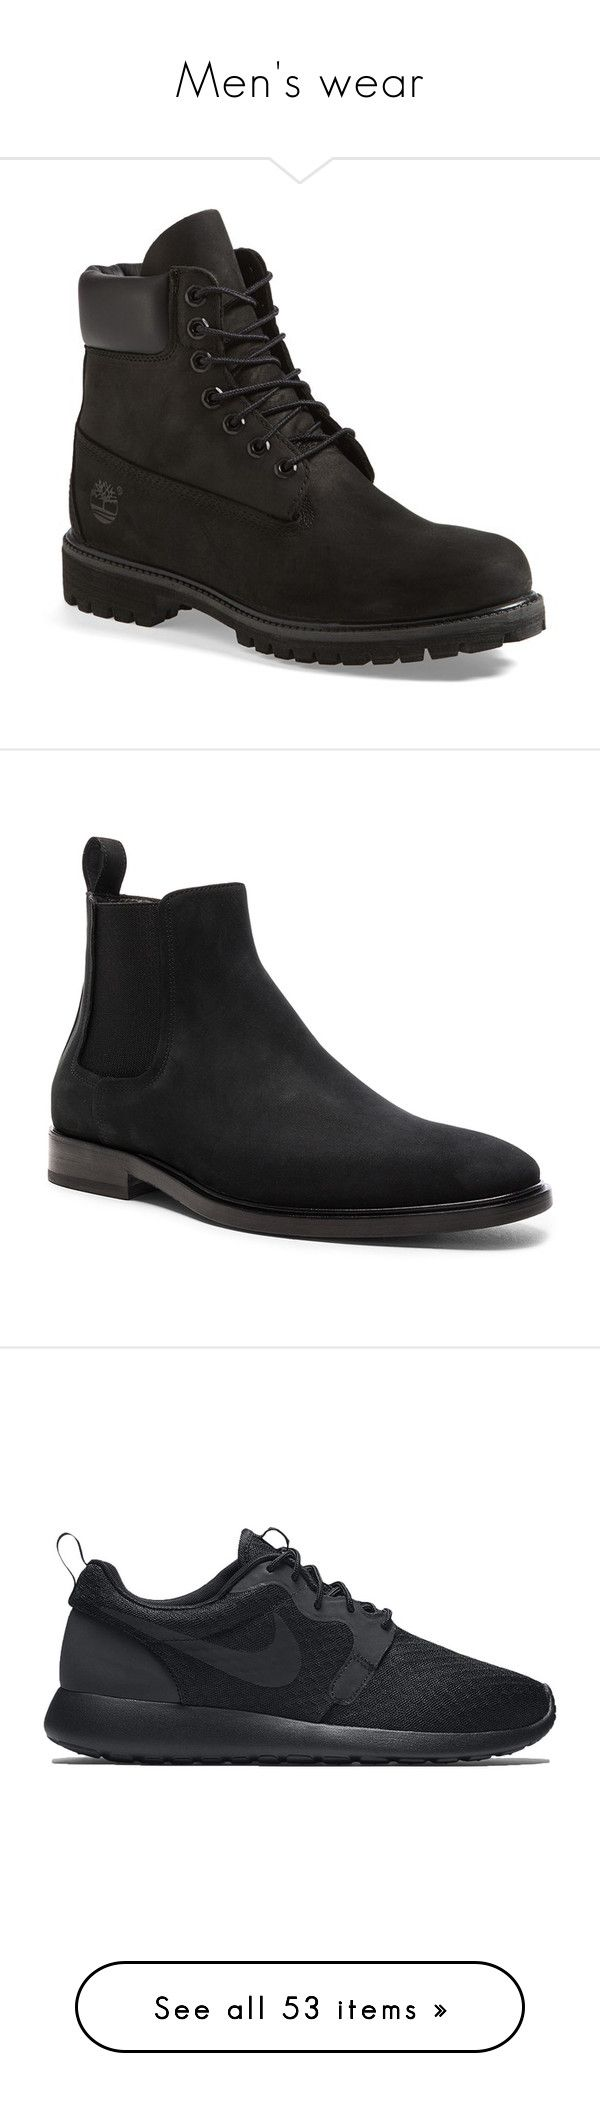 """""""Men's wear"""" by iamgabejeffers ❤ liked on Polyvore featuring men's fashion, men's shoes, men's boots, shoes, boots, men, socks and shoes, timberland, black and mens waterproof shoes"""